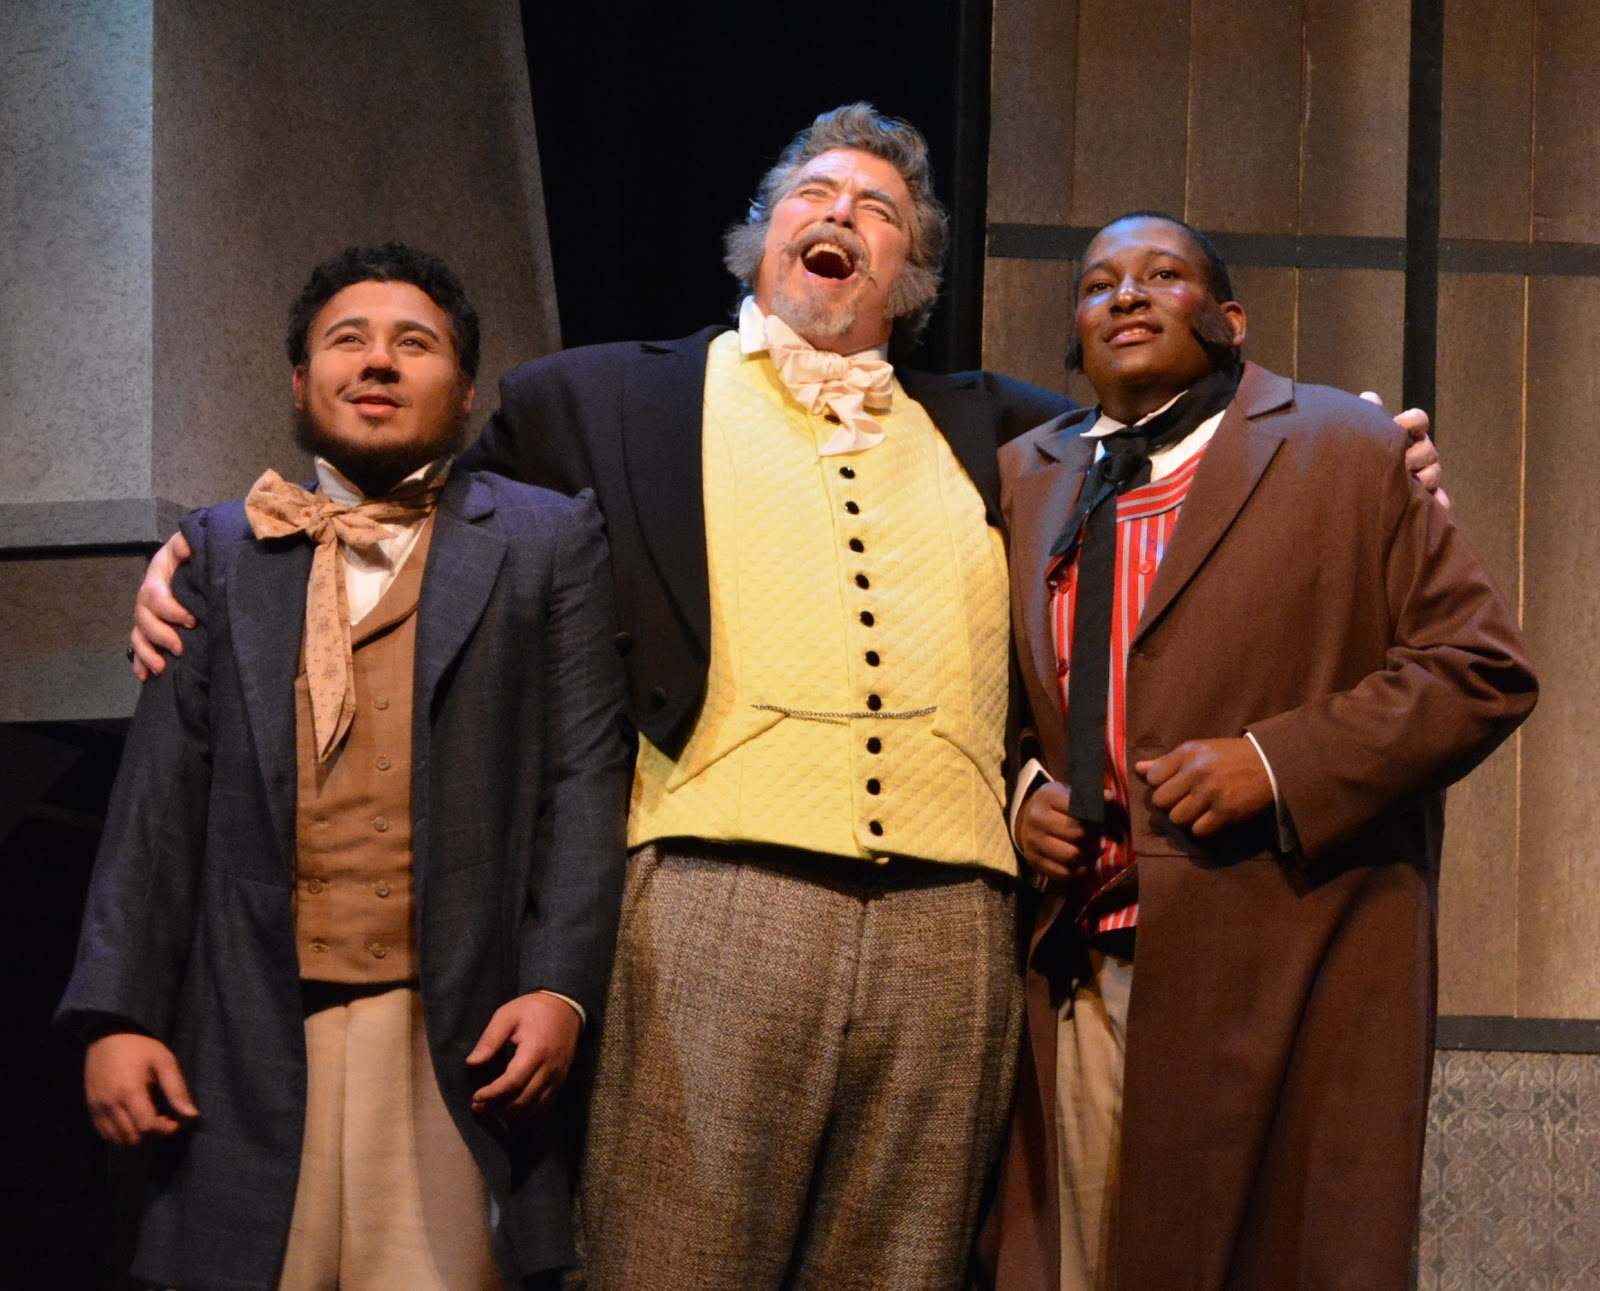 IN REVIEW: (from left to right) tenor LORENZE SPARKS as Bardolfo, baritone RICHARD ZELLER as Falstaff, and bass REGINALD POWELL as Pistola in UNCG Opera Theatre's April 2019 production of Giuseppe Verdi's FALSTAFF [Photograph by Amy Holroyd, © by UNCG Opera Theatre]